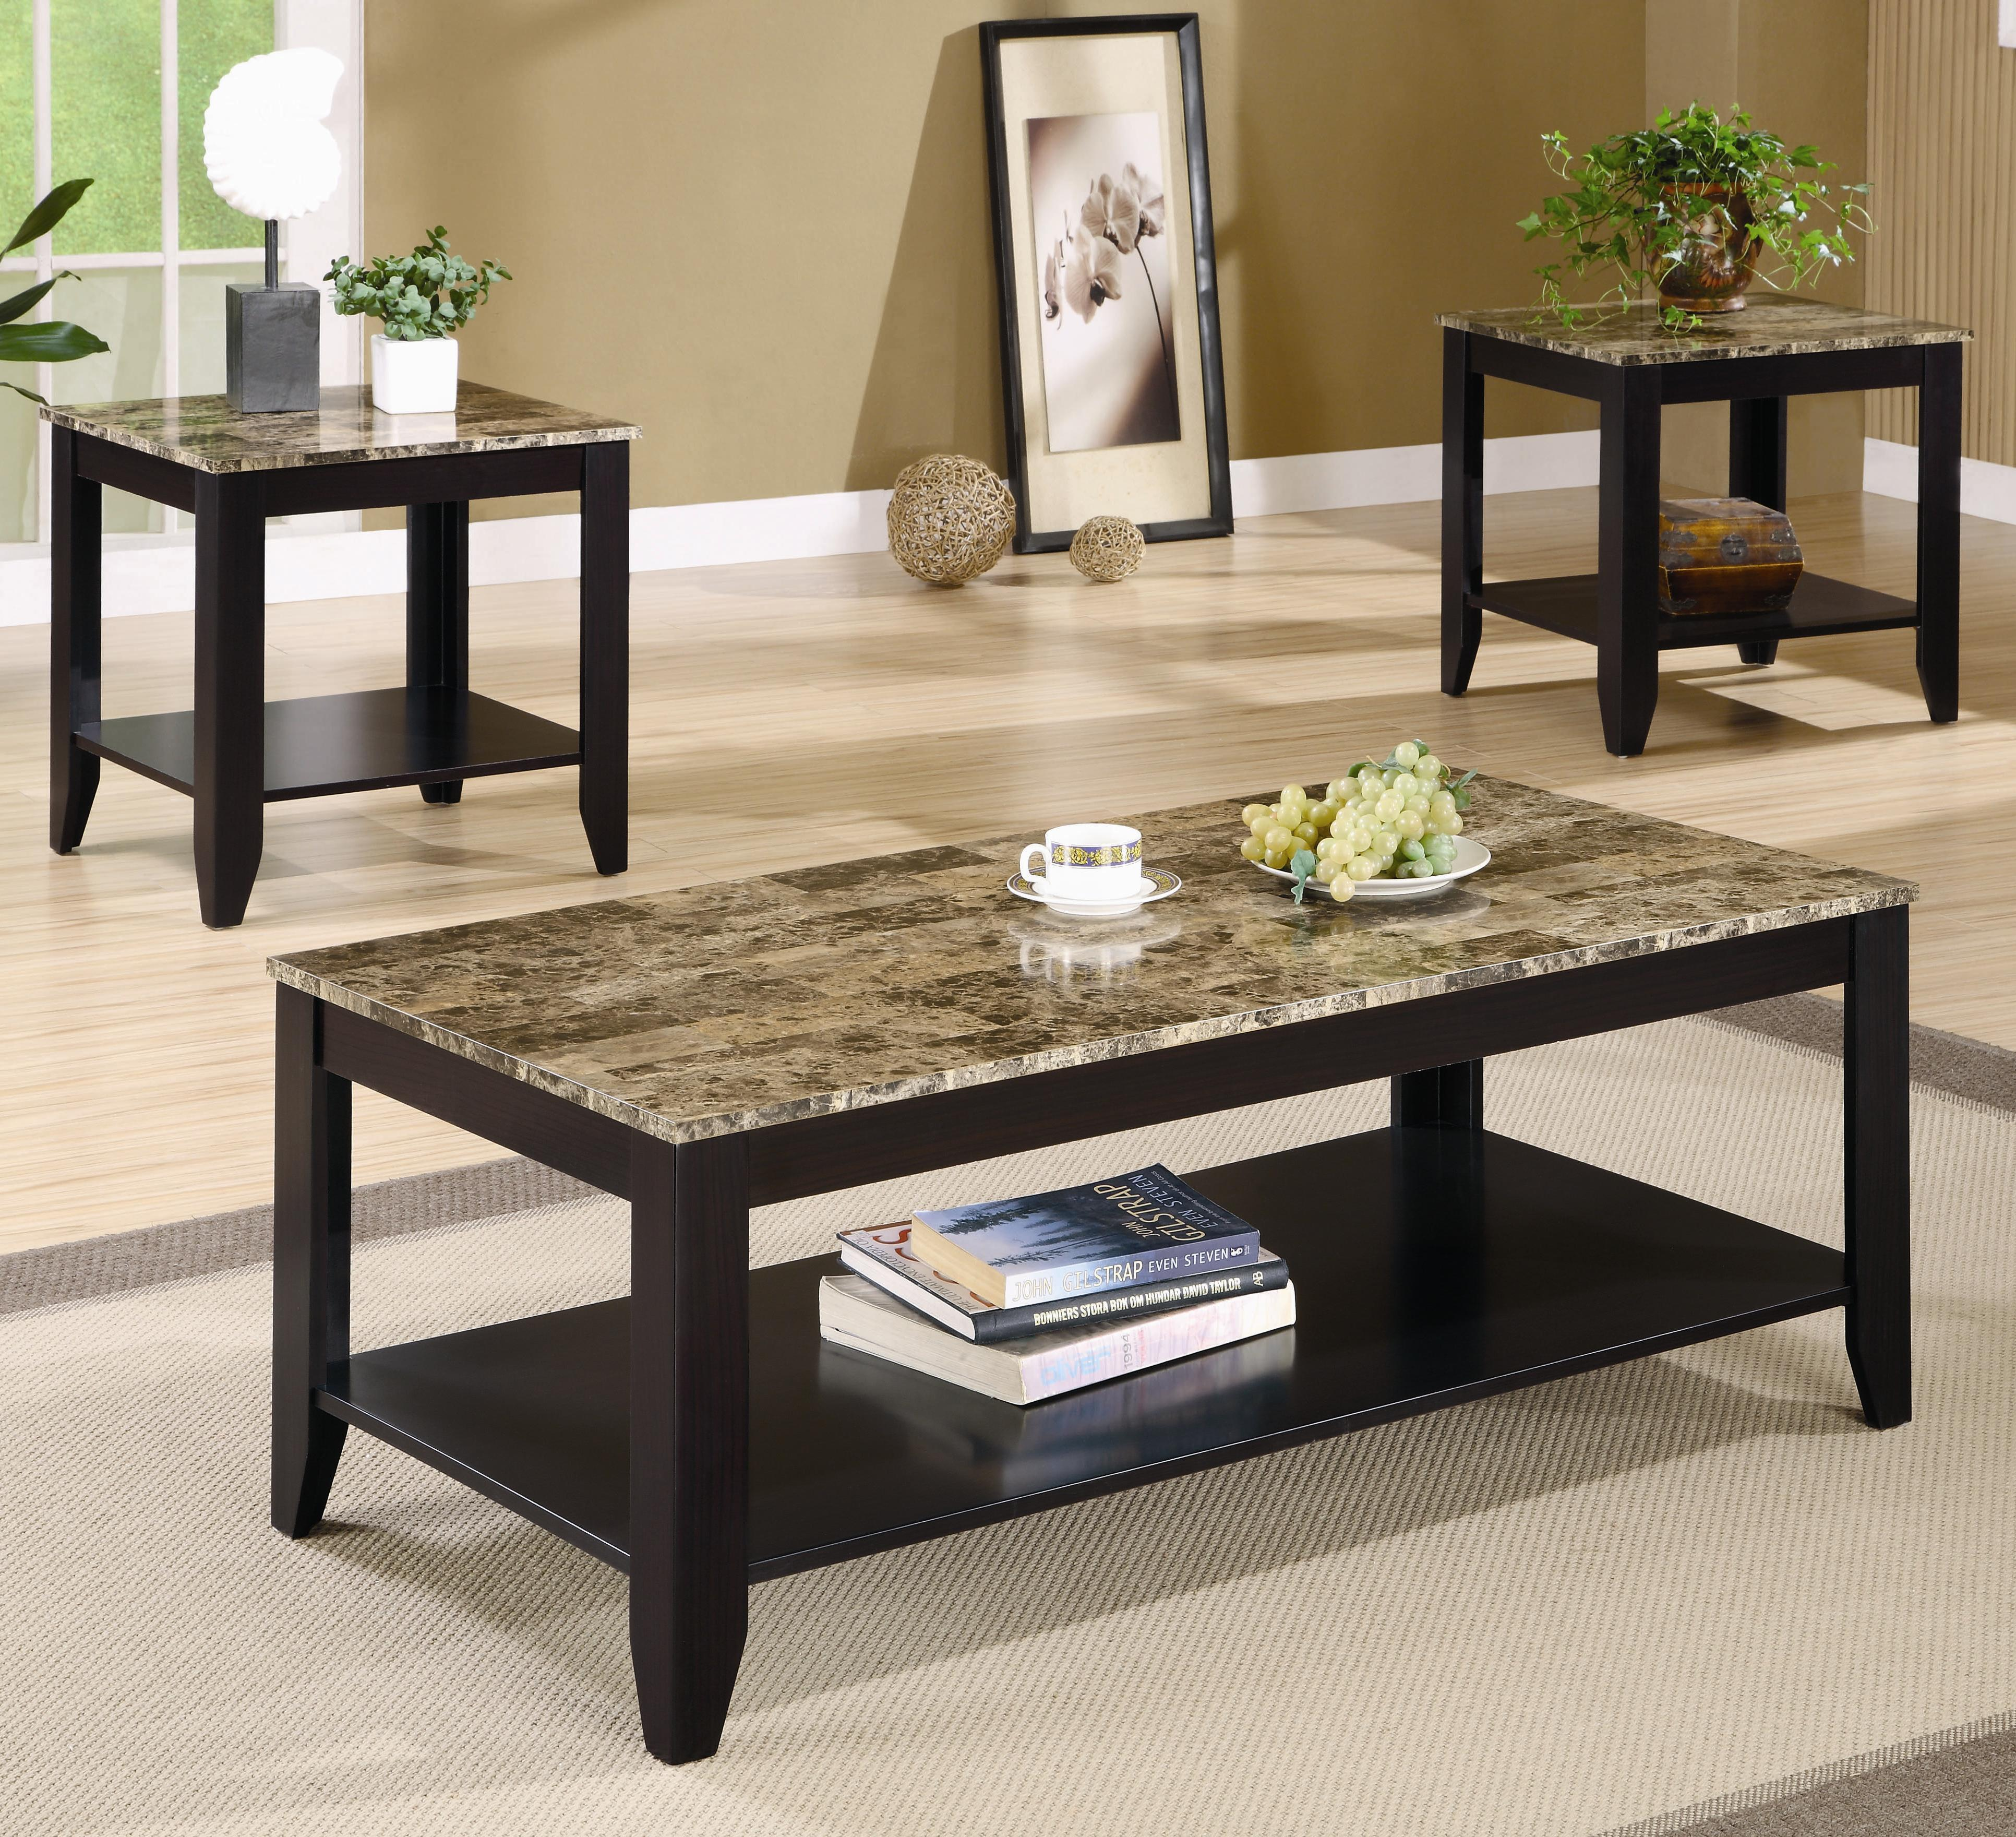 Occasional Table Sets 3 Piece Table Set by Coaster at Lapeer Furniture & Mattress Center